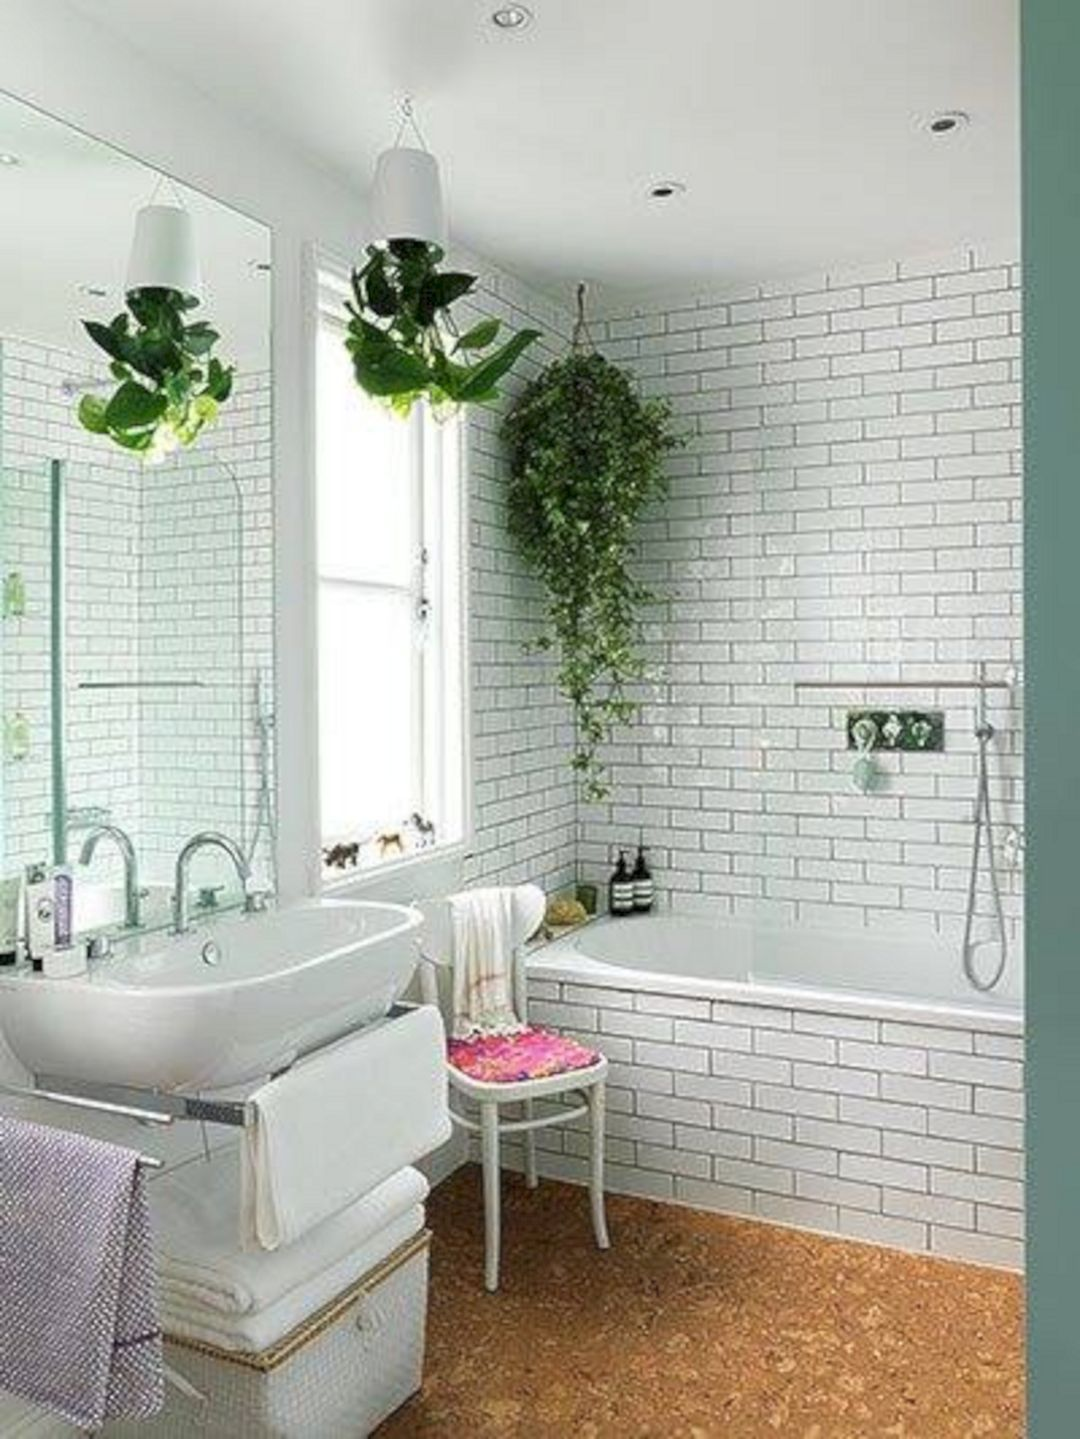 24 Most Creative Ideas To Hack Your Bathroom Beauty With Indoor ...